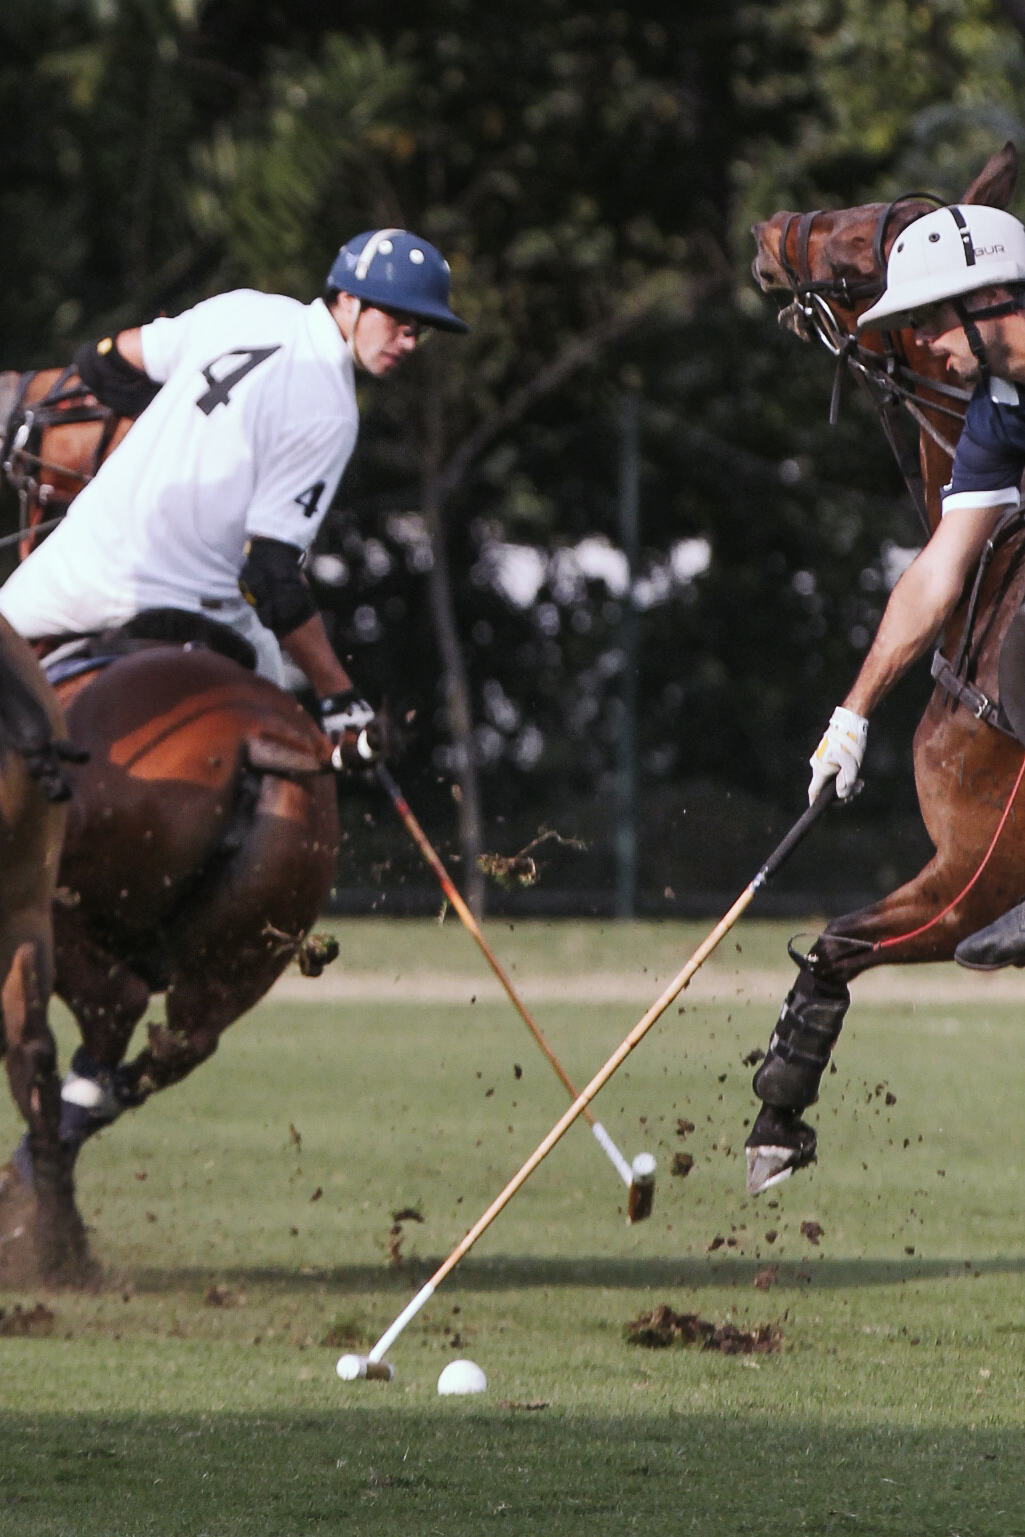 FILA Polo Cup 2017_High Goal-24.jpg